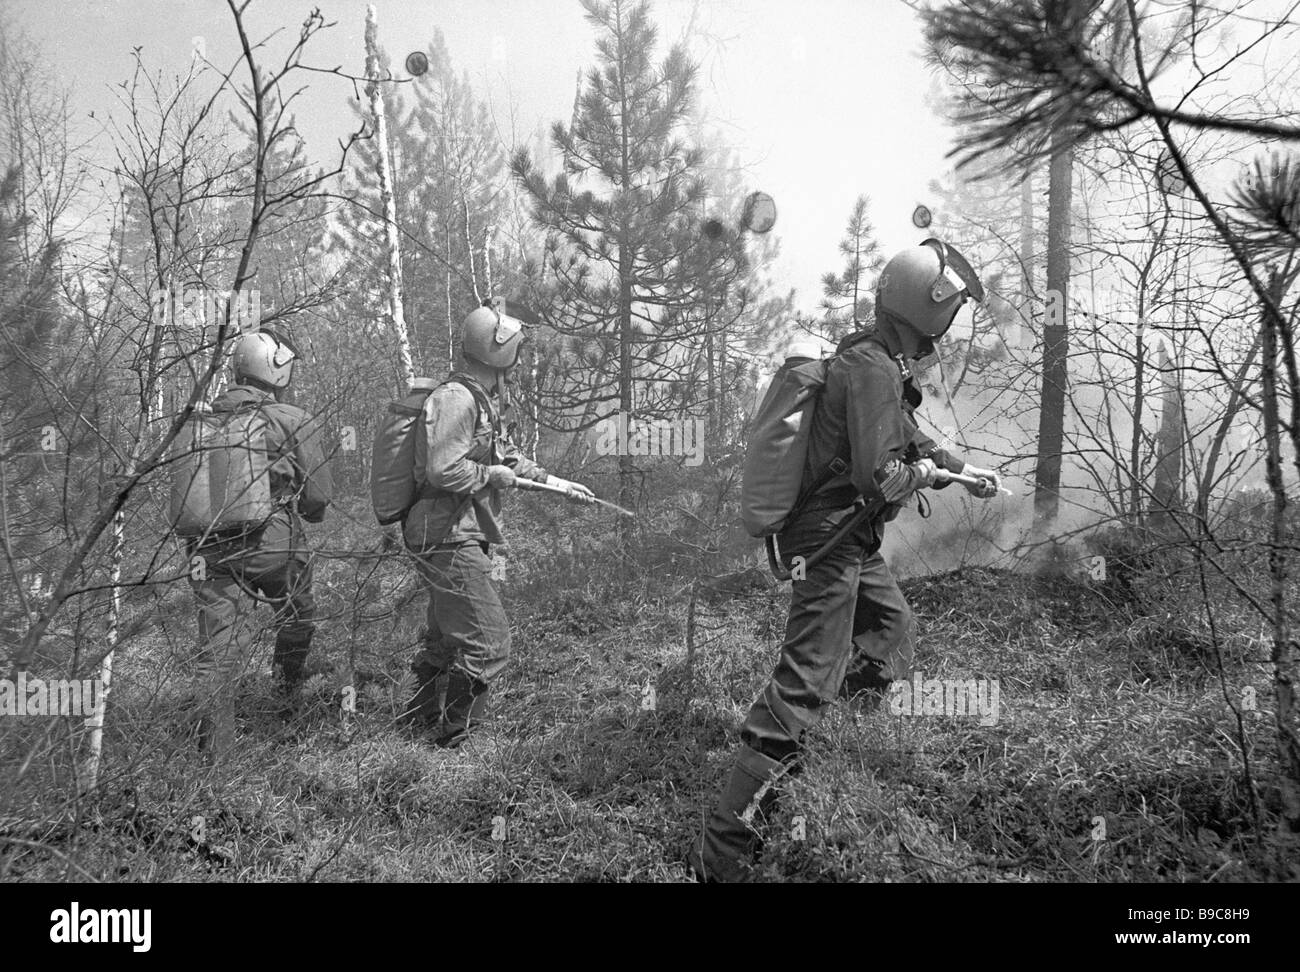 Firemen fight a taiga conflagration - Stock Image